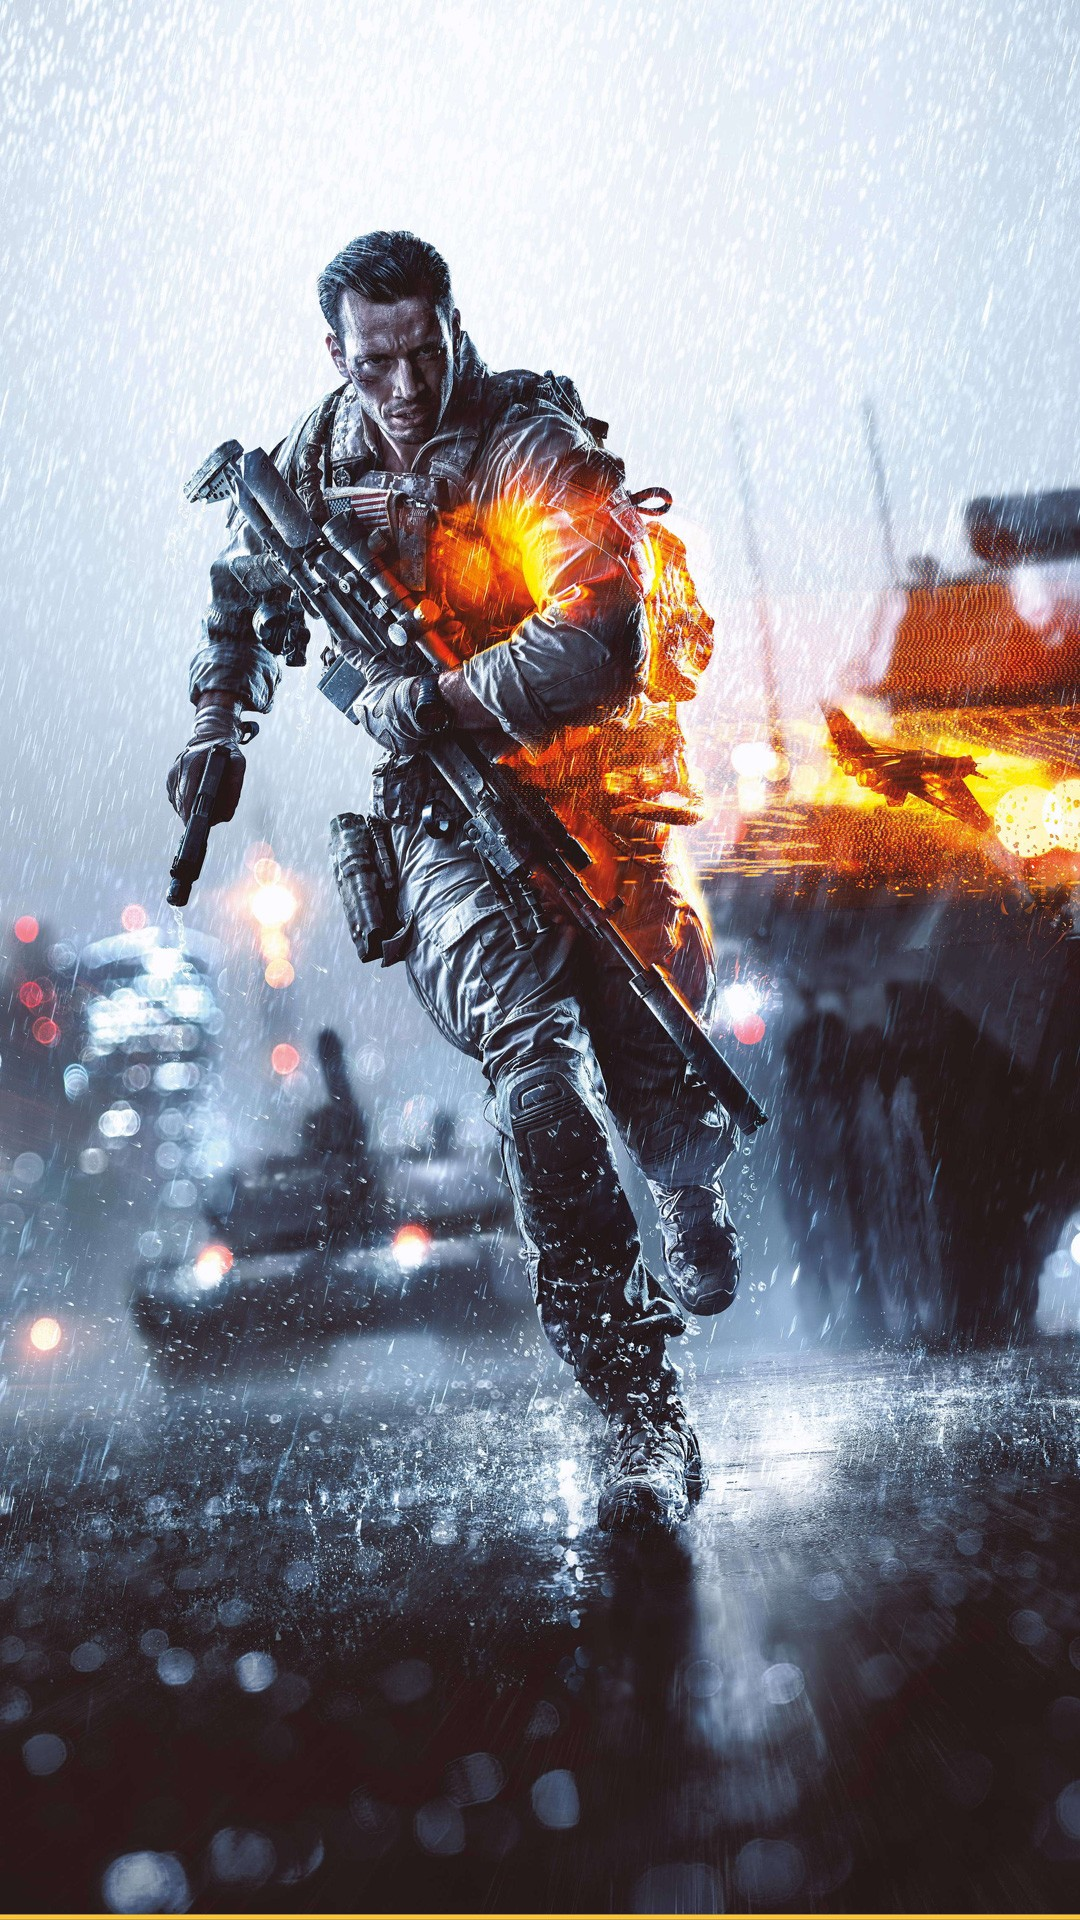 Hd Cool Boy Wallpaper Battlefield 4 4k 8k Wallpapers Hd Wallpapers Id 17654